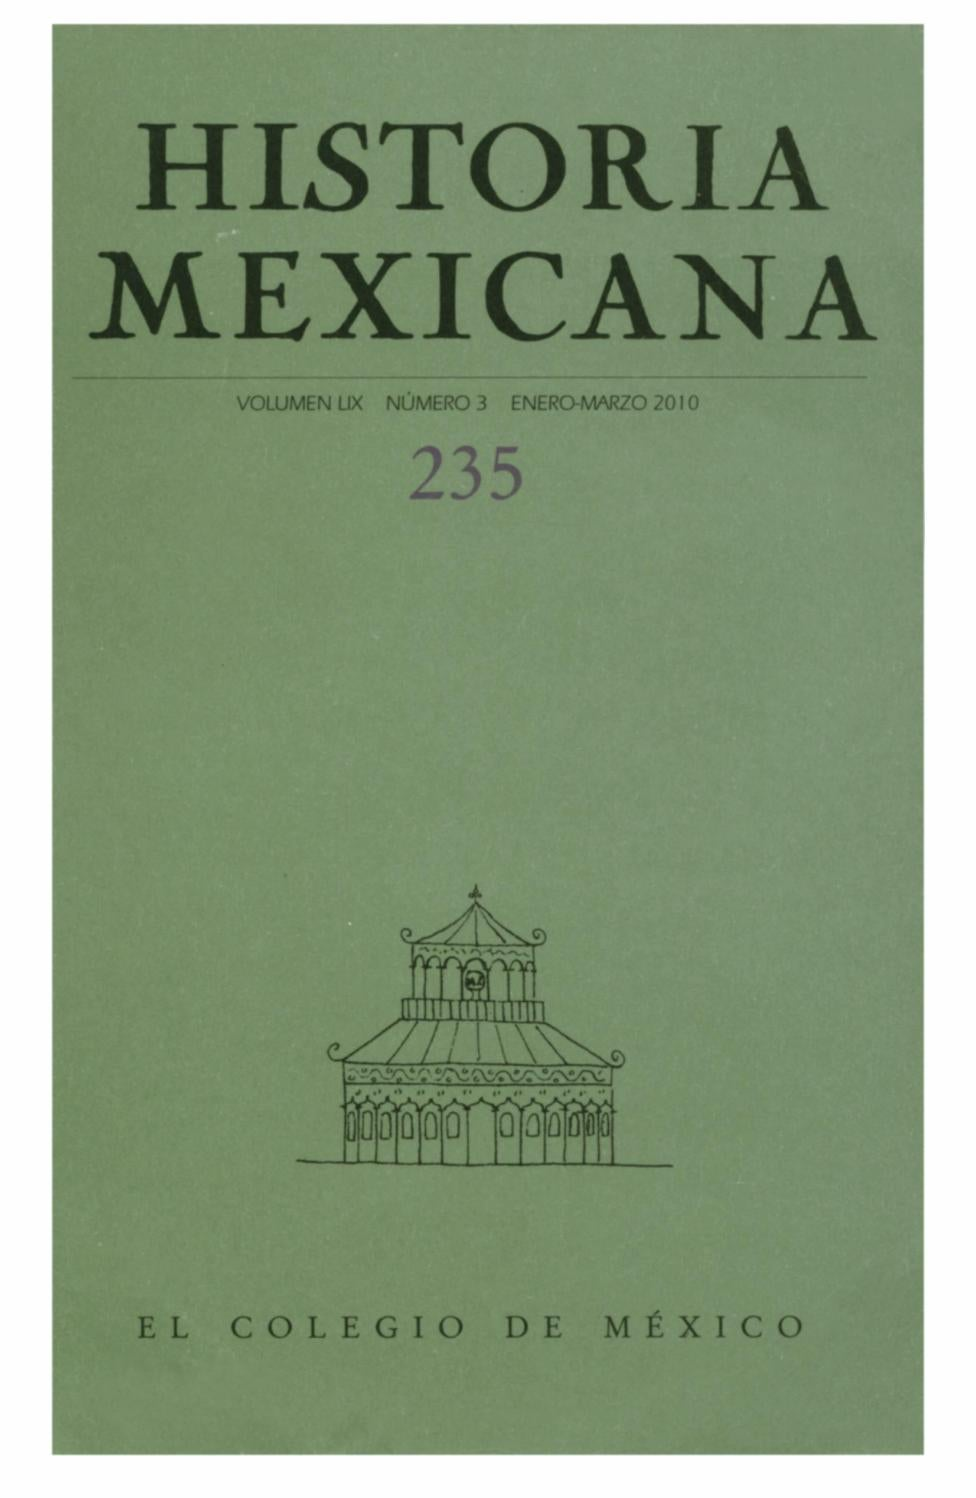 Historia mexicana 235 volumen 59 número 3 by Ce Ocelotl - issuu